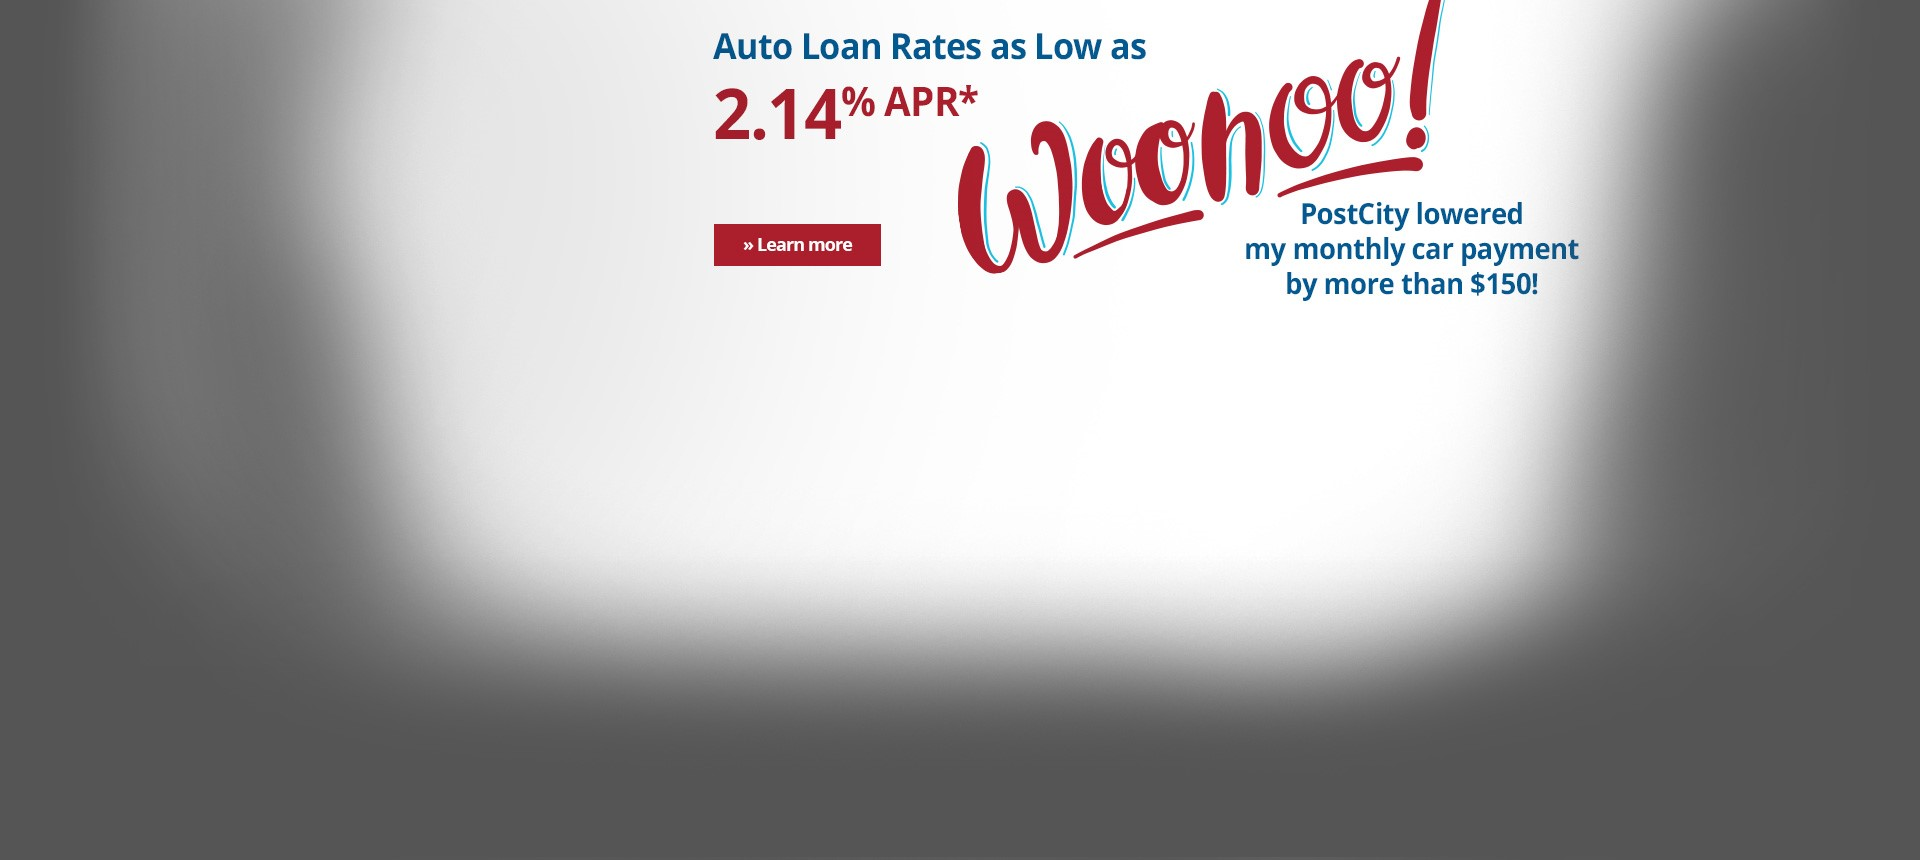 Auto Loans Available at PostCity!